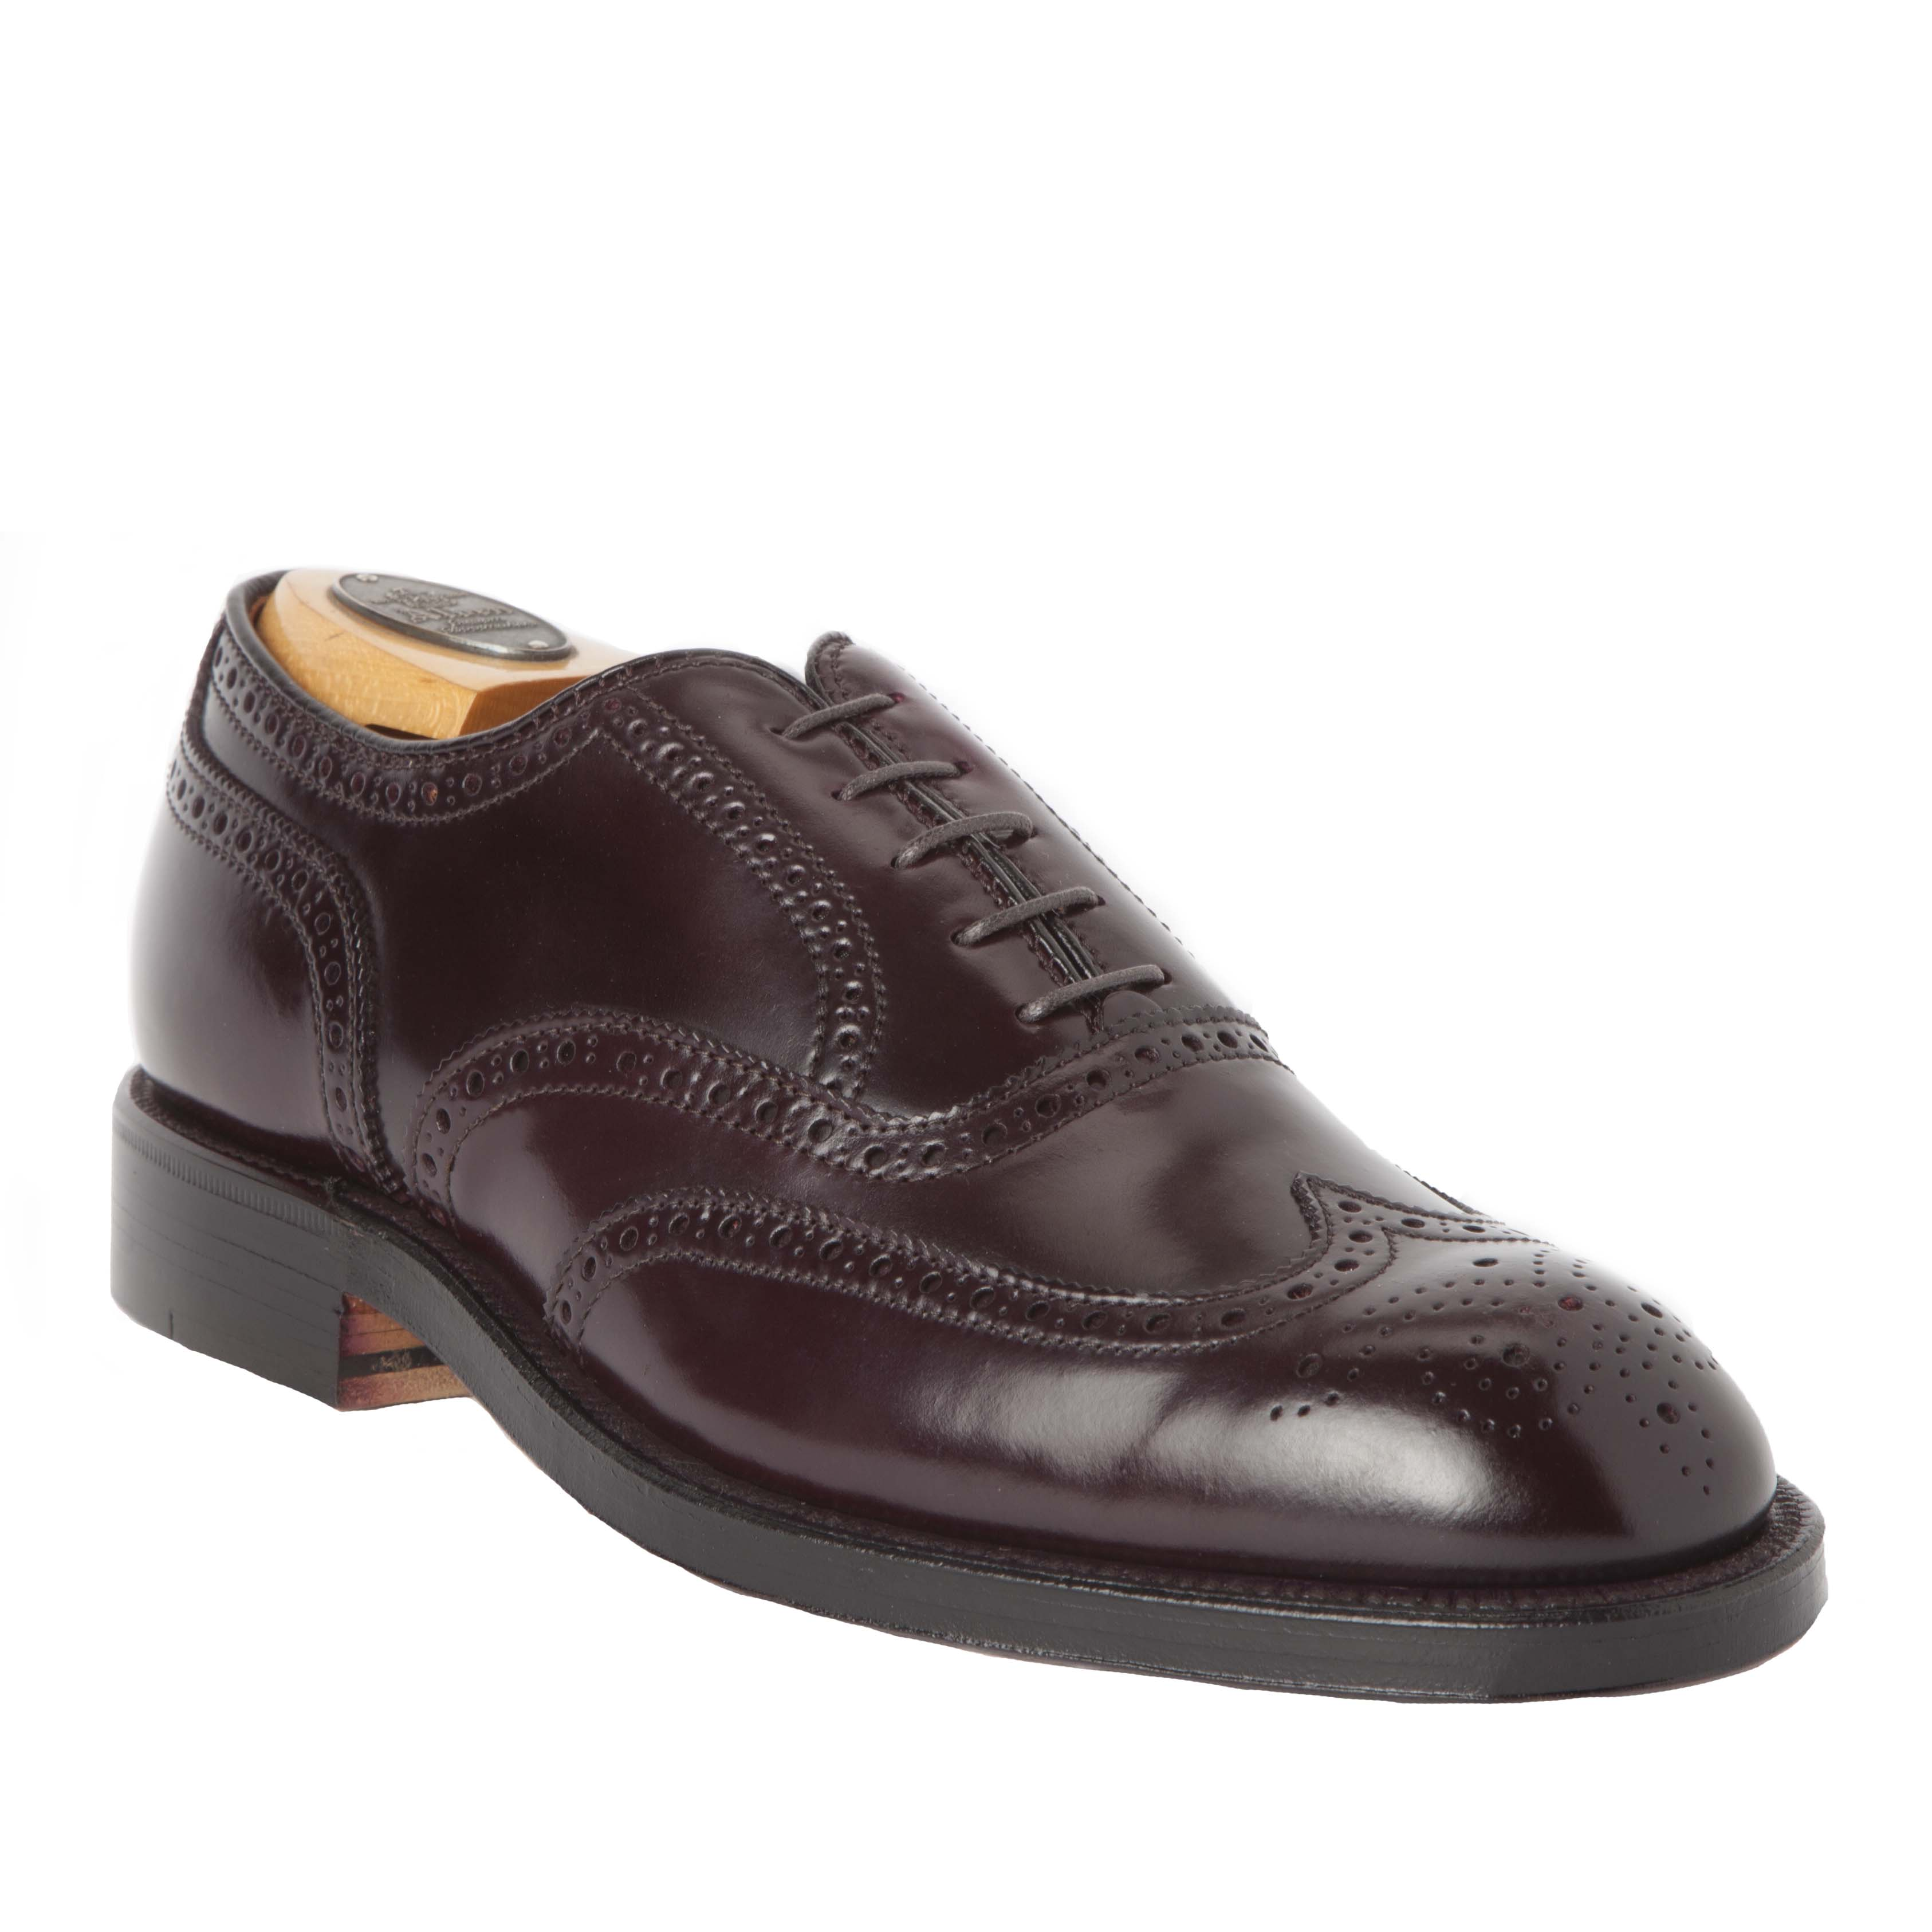 Wing tip balcolor 8 shell cordovan974 alden shoes for The alden